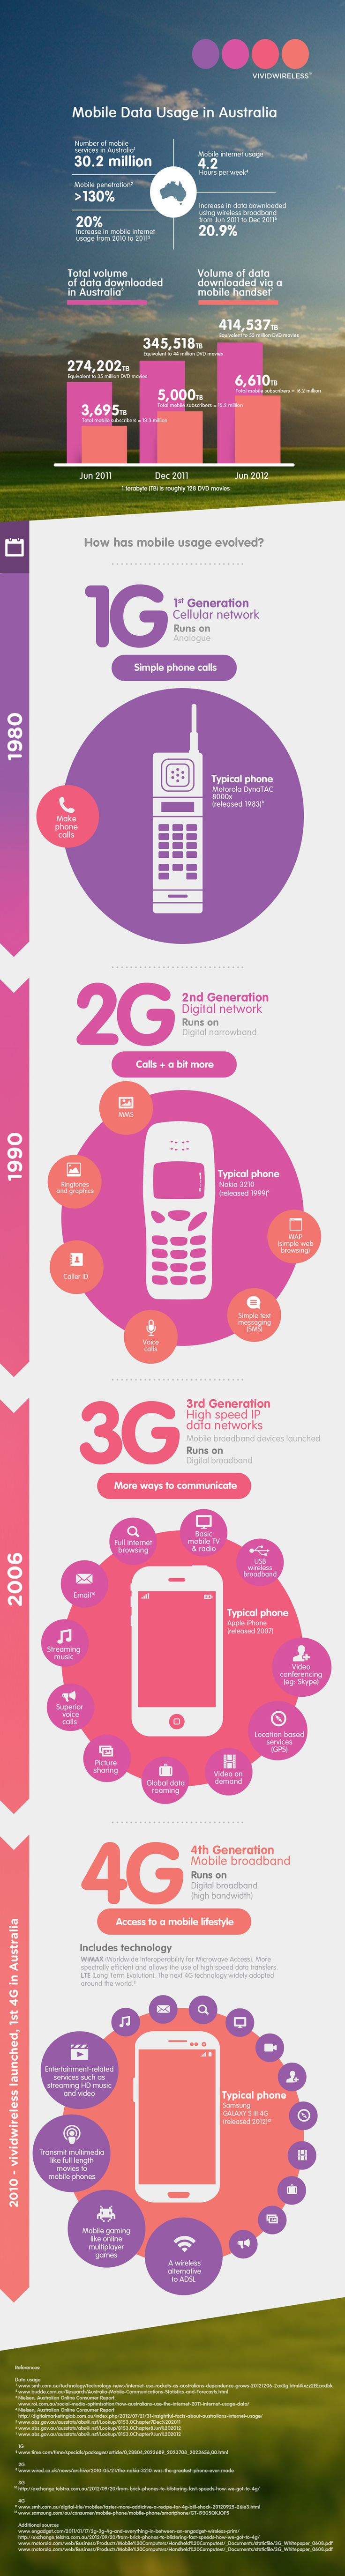 Mobile Data Usage in Australia Infographic | Vividwireless | vividwireless